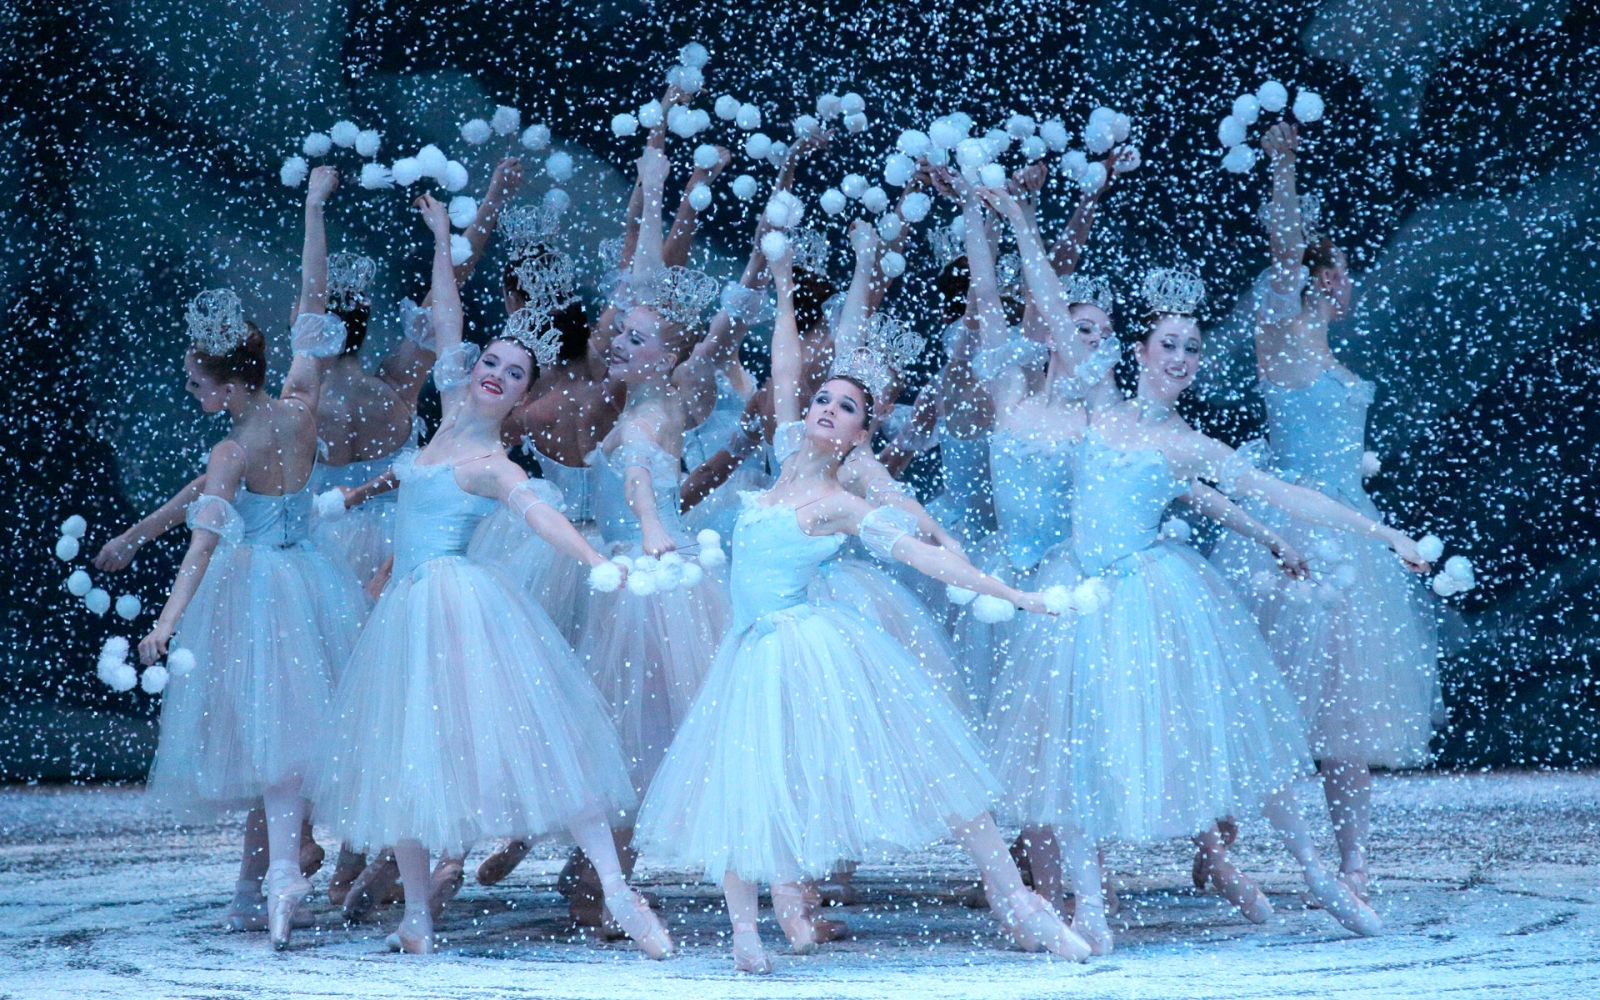 Best Christmas Broadway Shows - New York City Ballet: George Balanchine's The Nutcracker